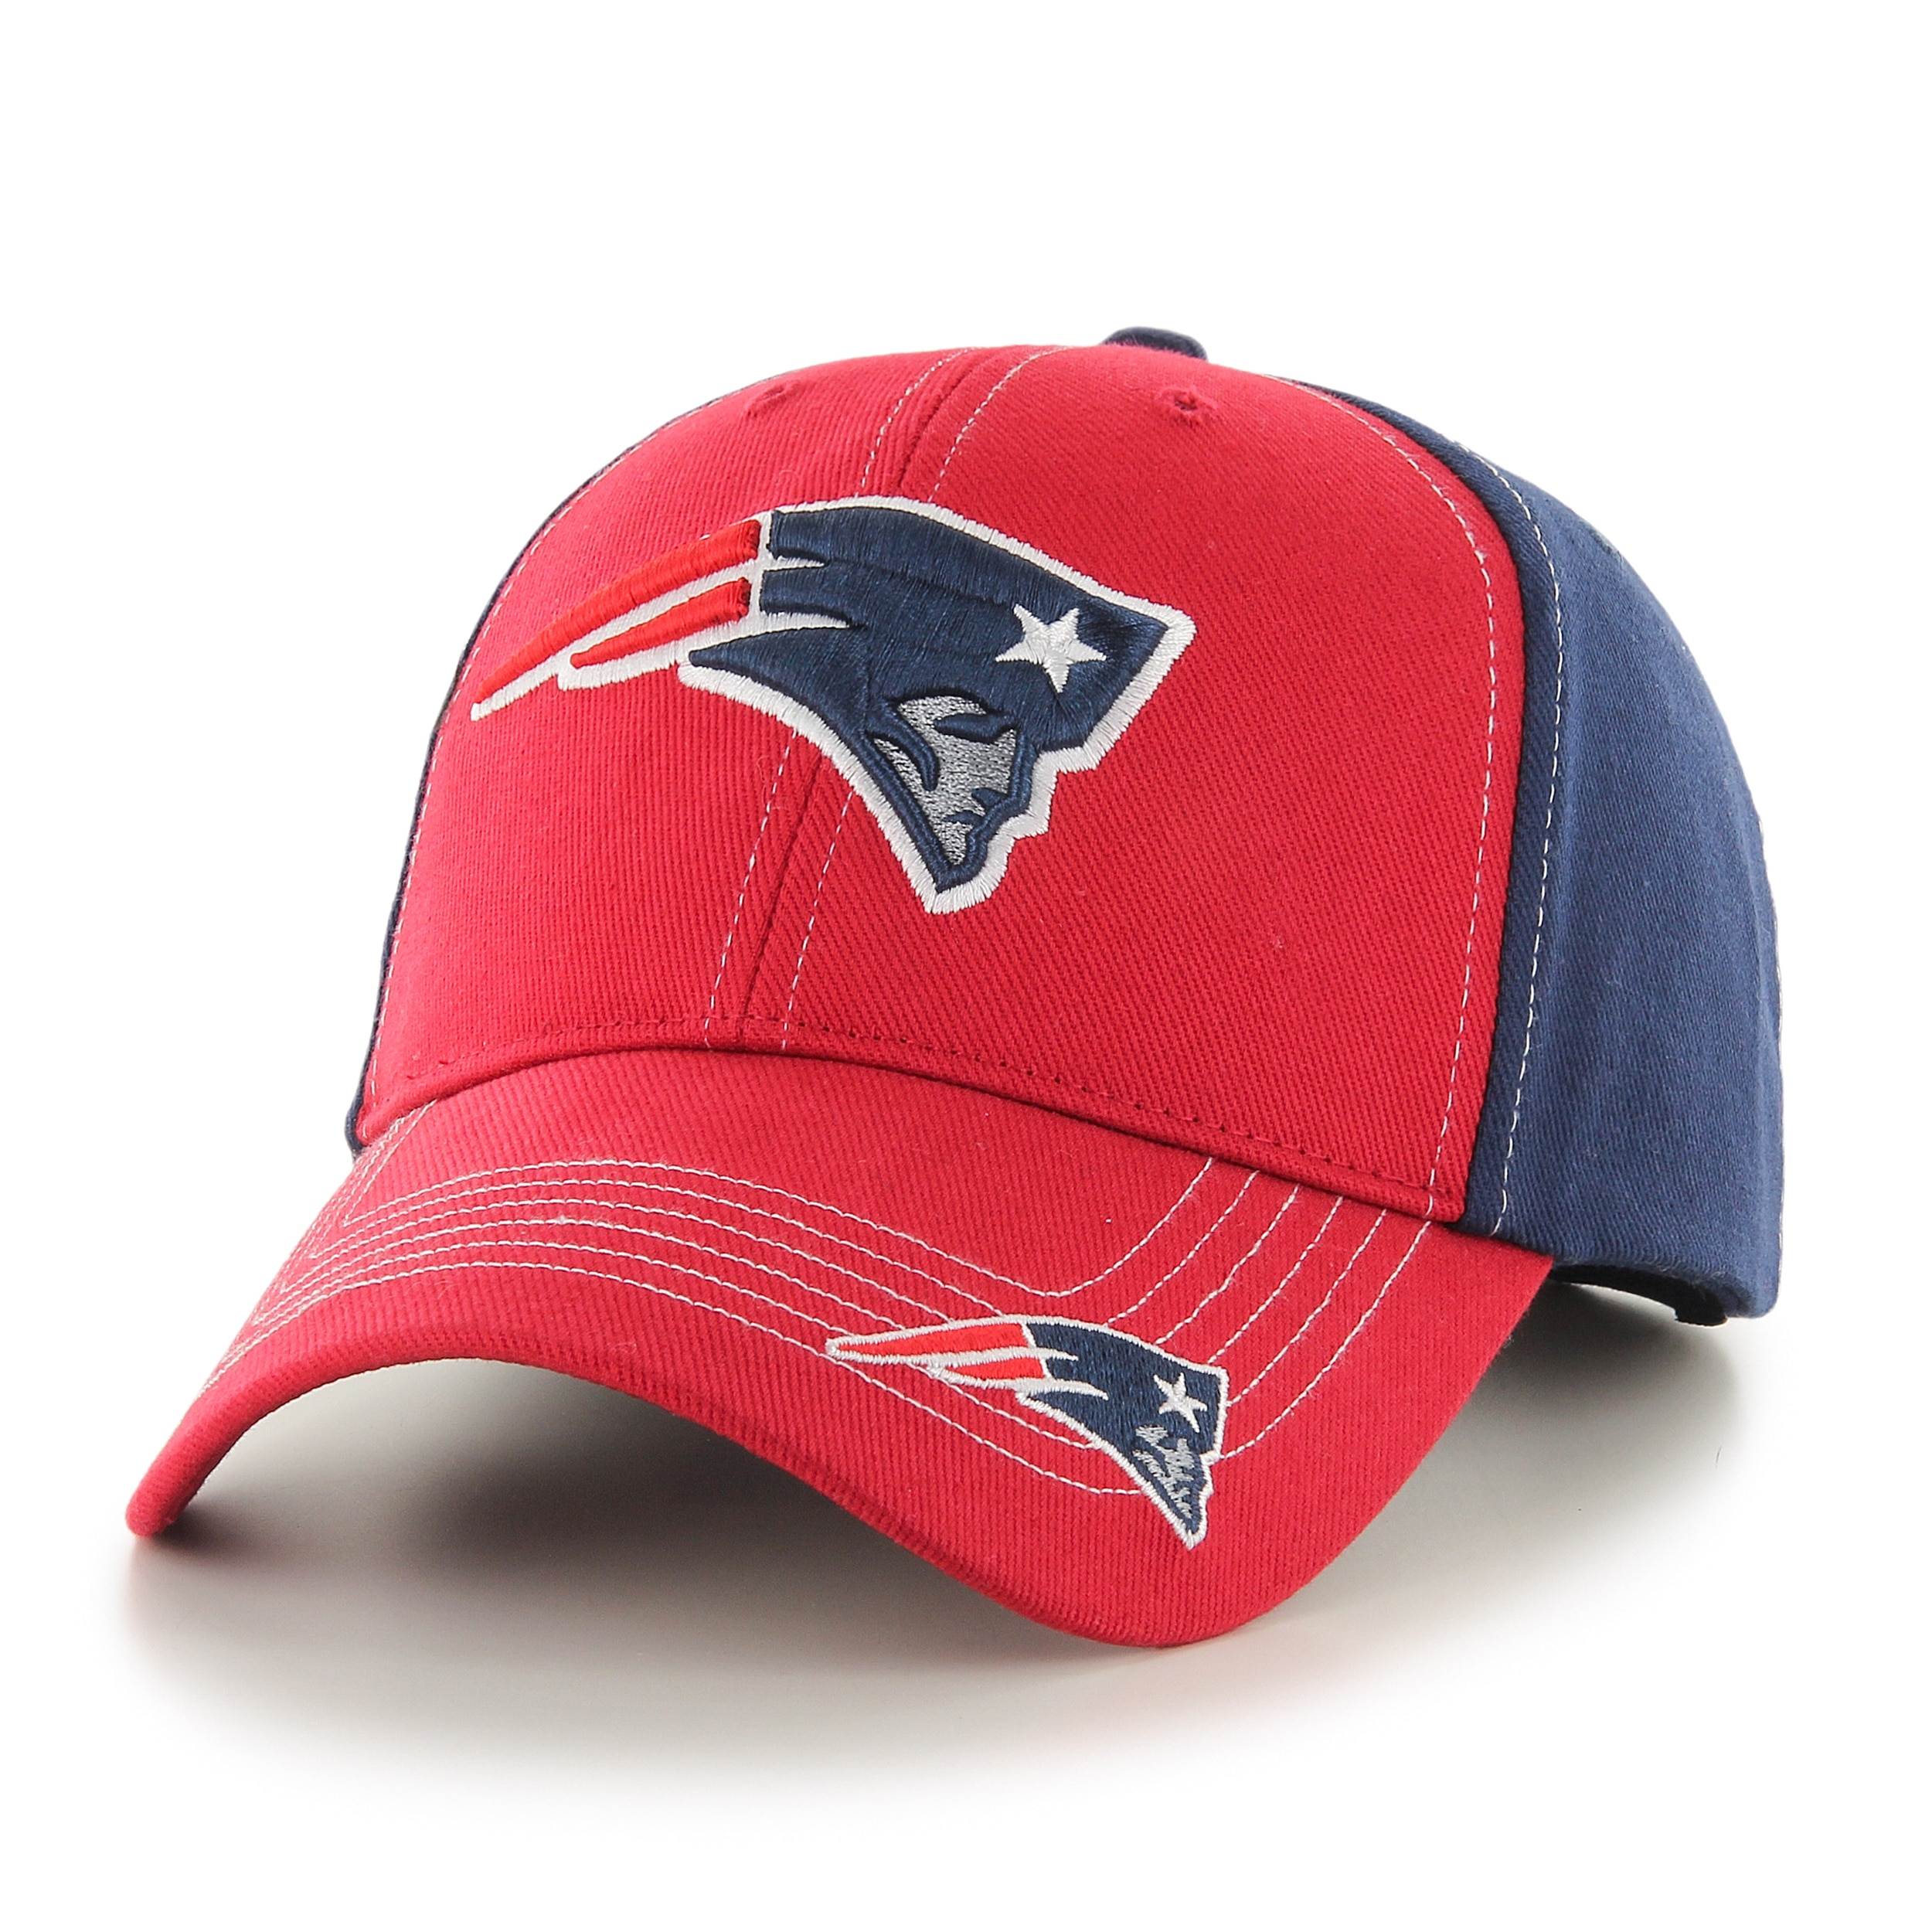 NFL Fan Favorite Revolver Cap, New England Patriots